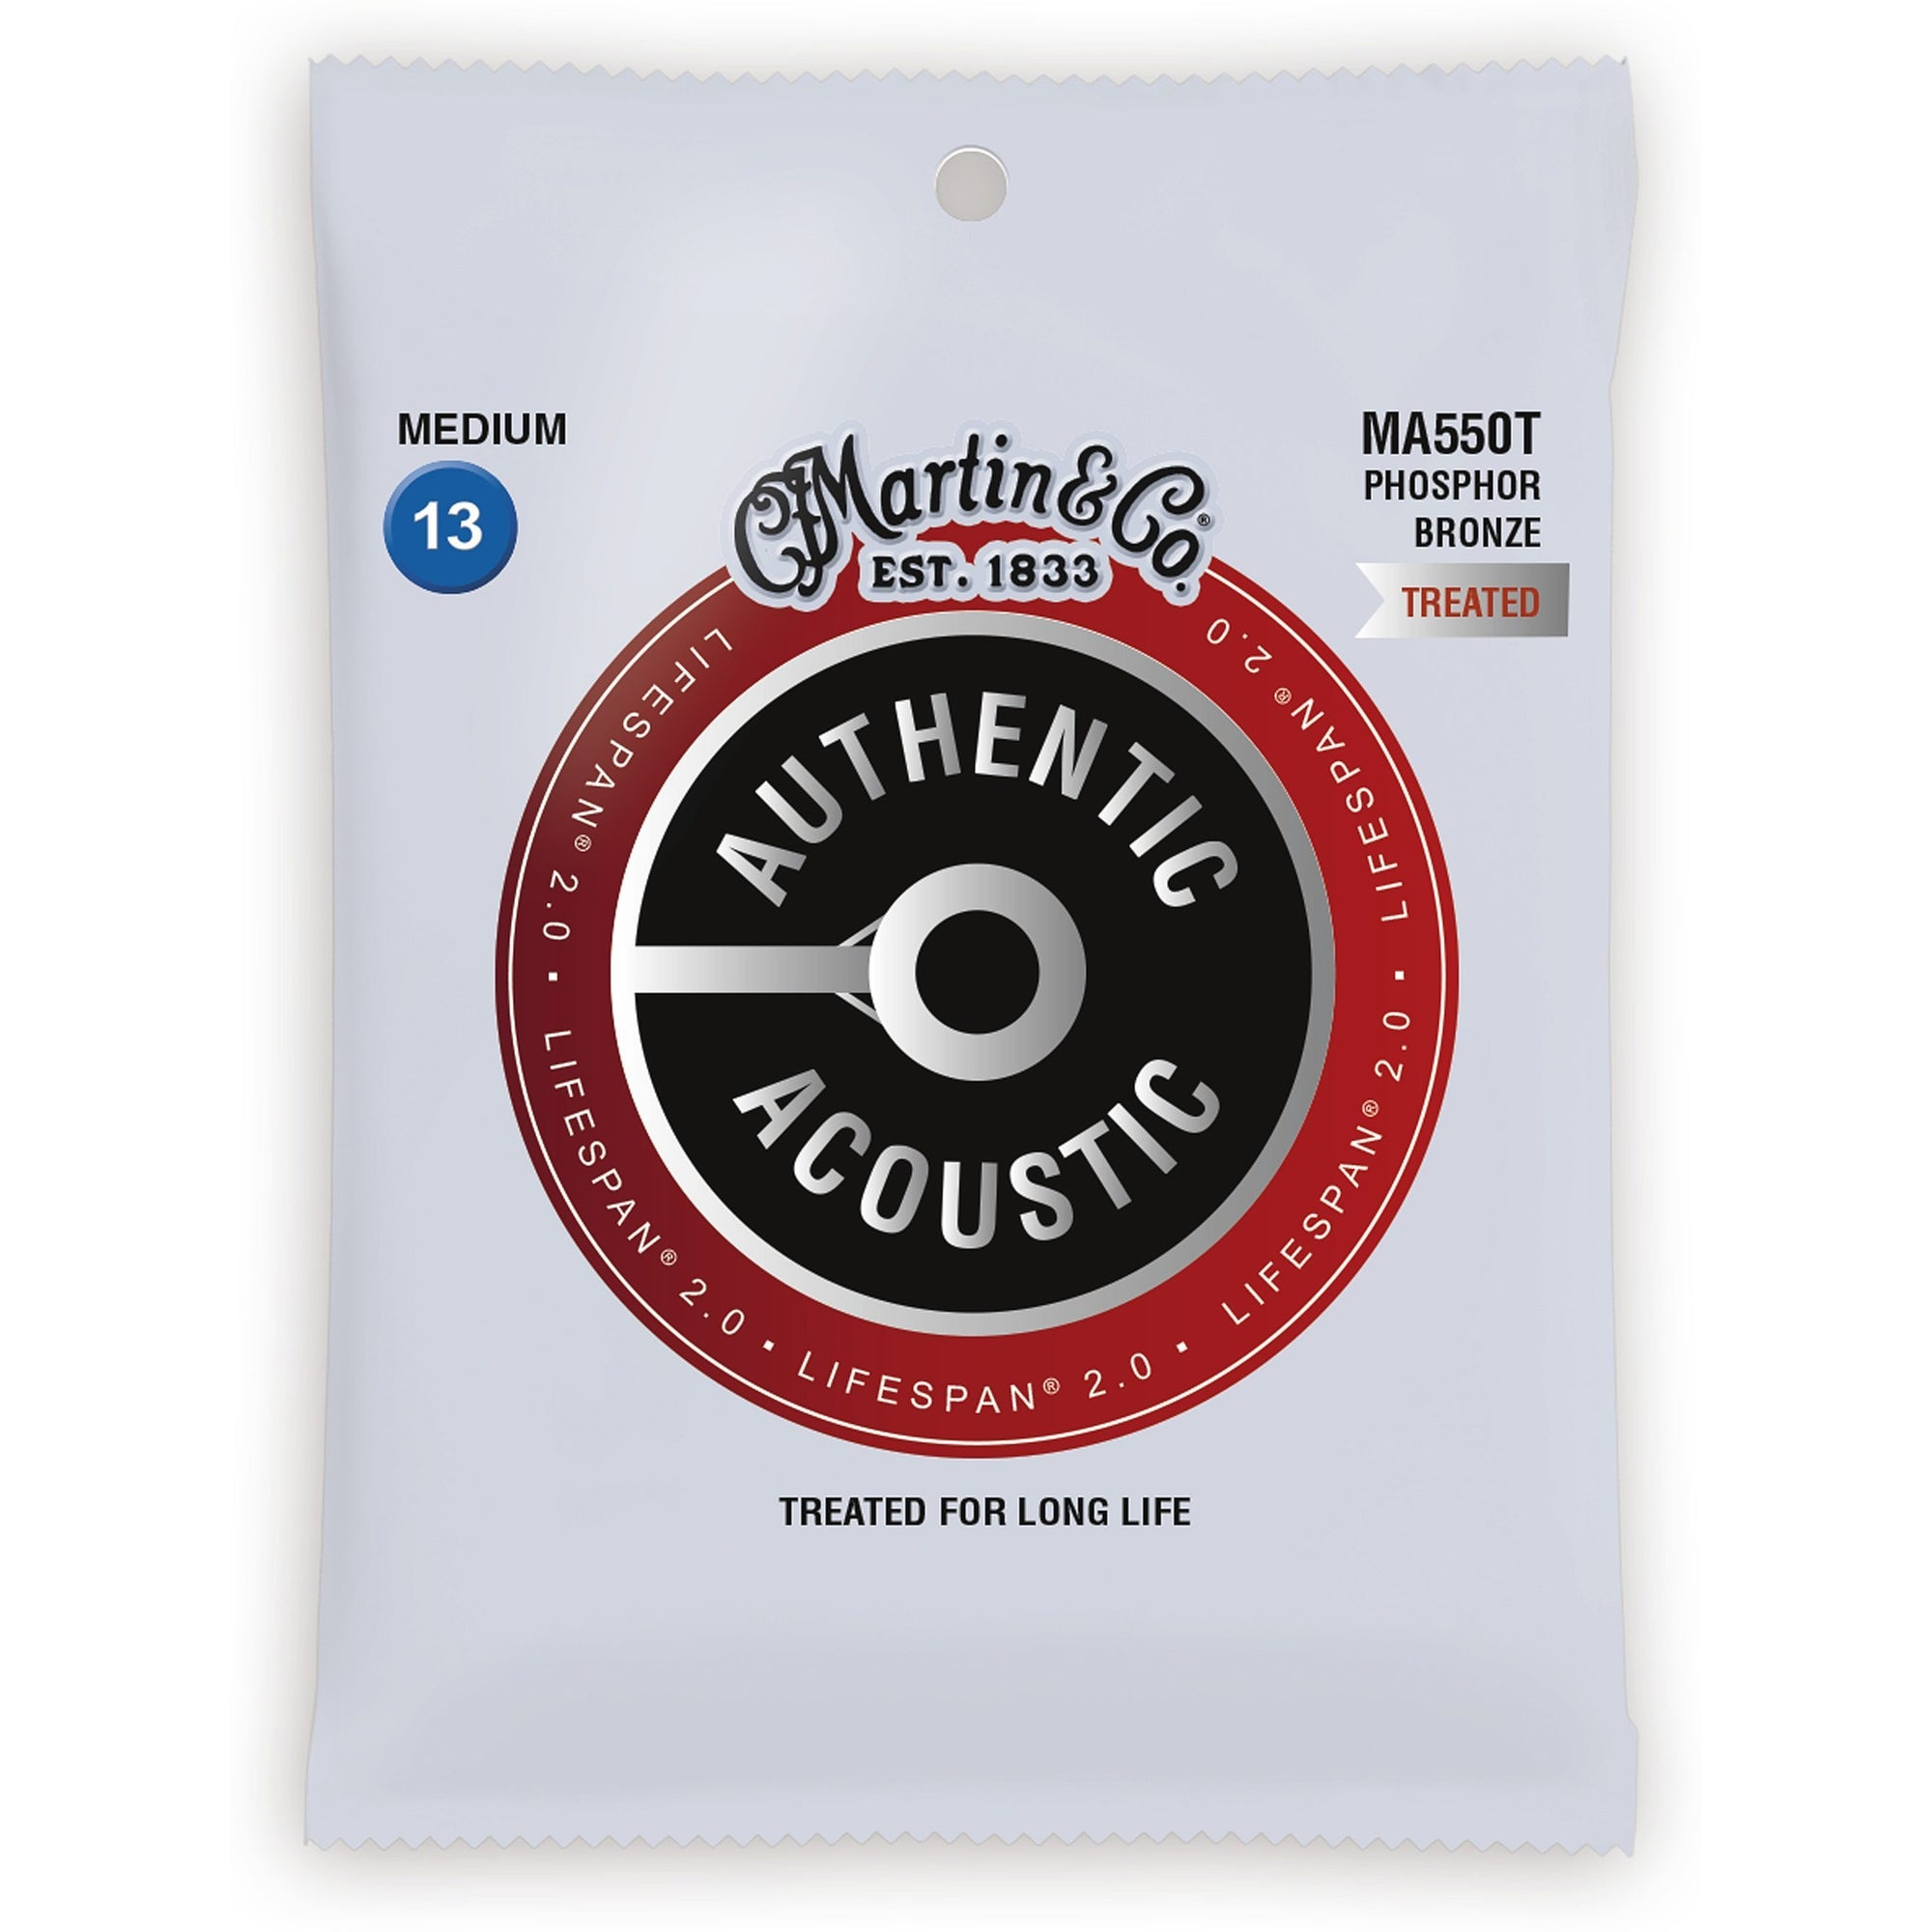 Martin Authentic Lifespan 2.0 Treated Phosphor Bronze Acoustic Guitar Strings, MA550T, Medium